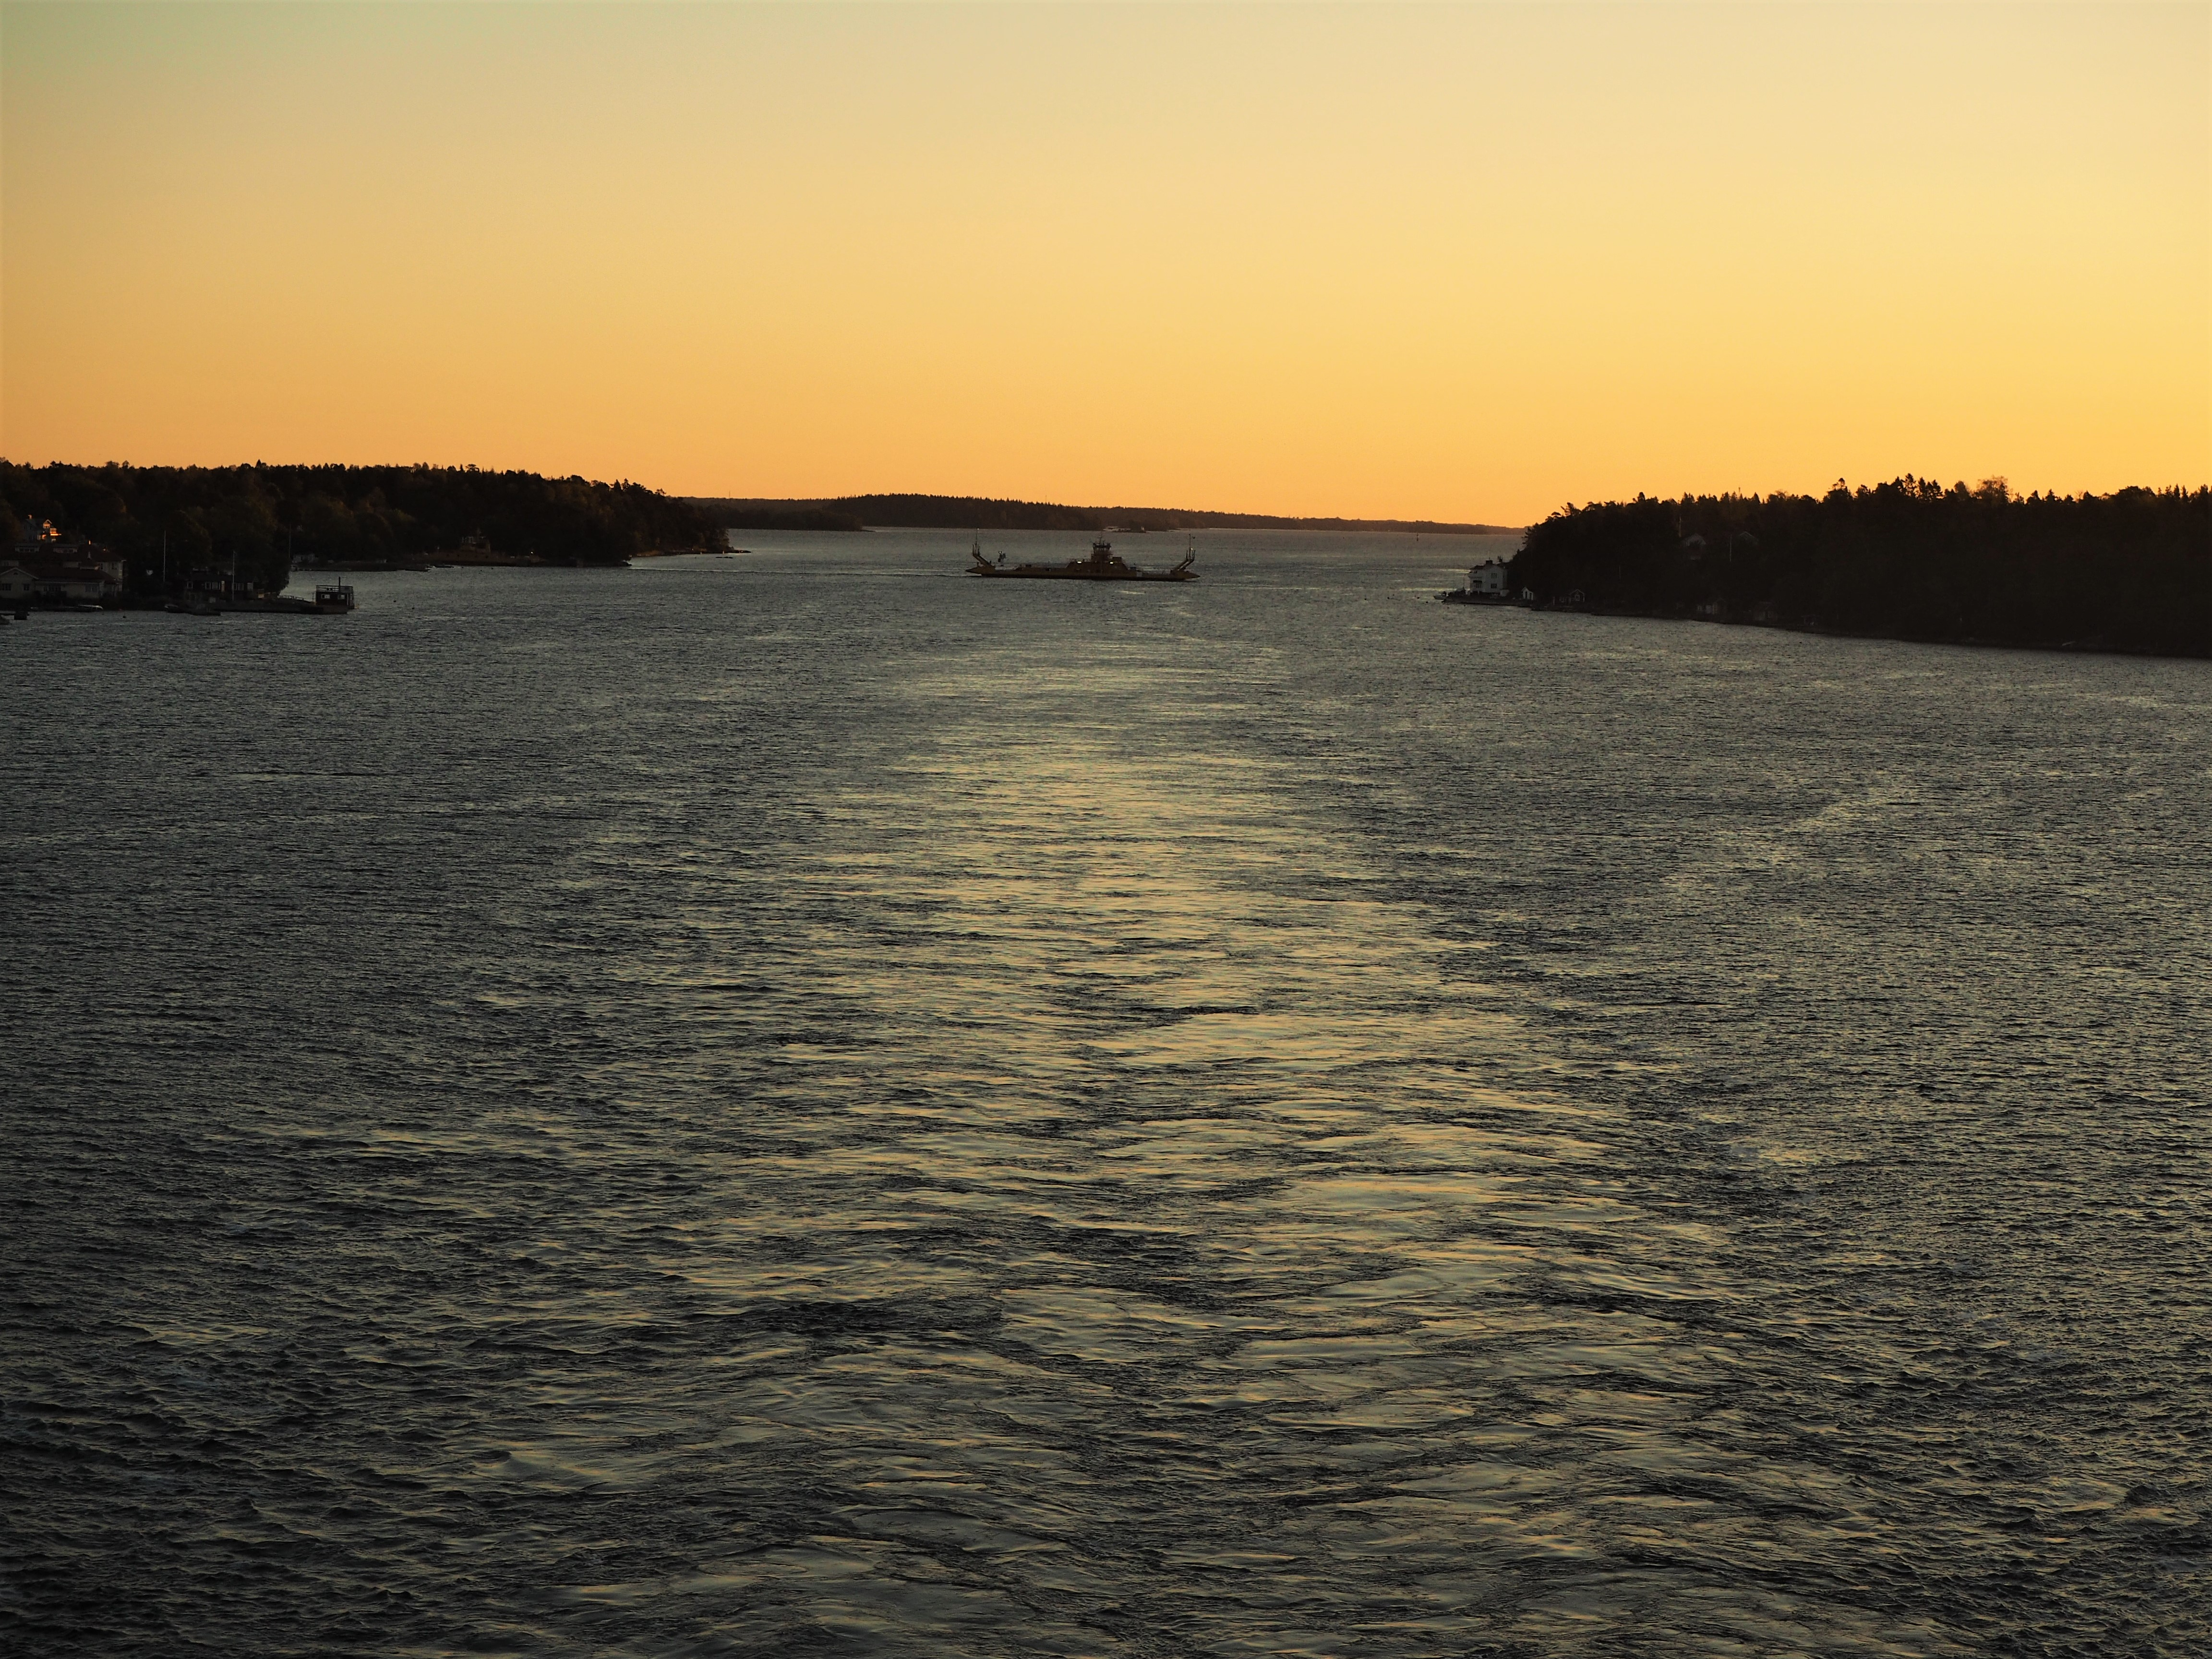 Ferry at daybreak